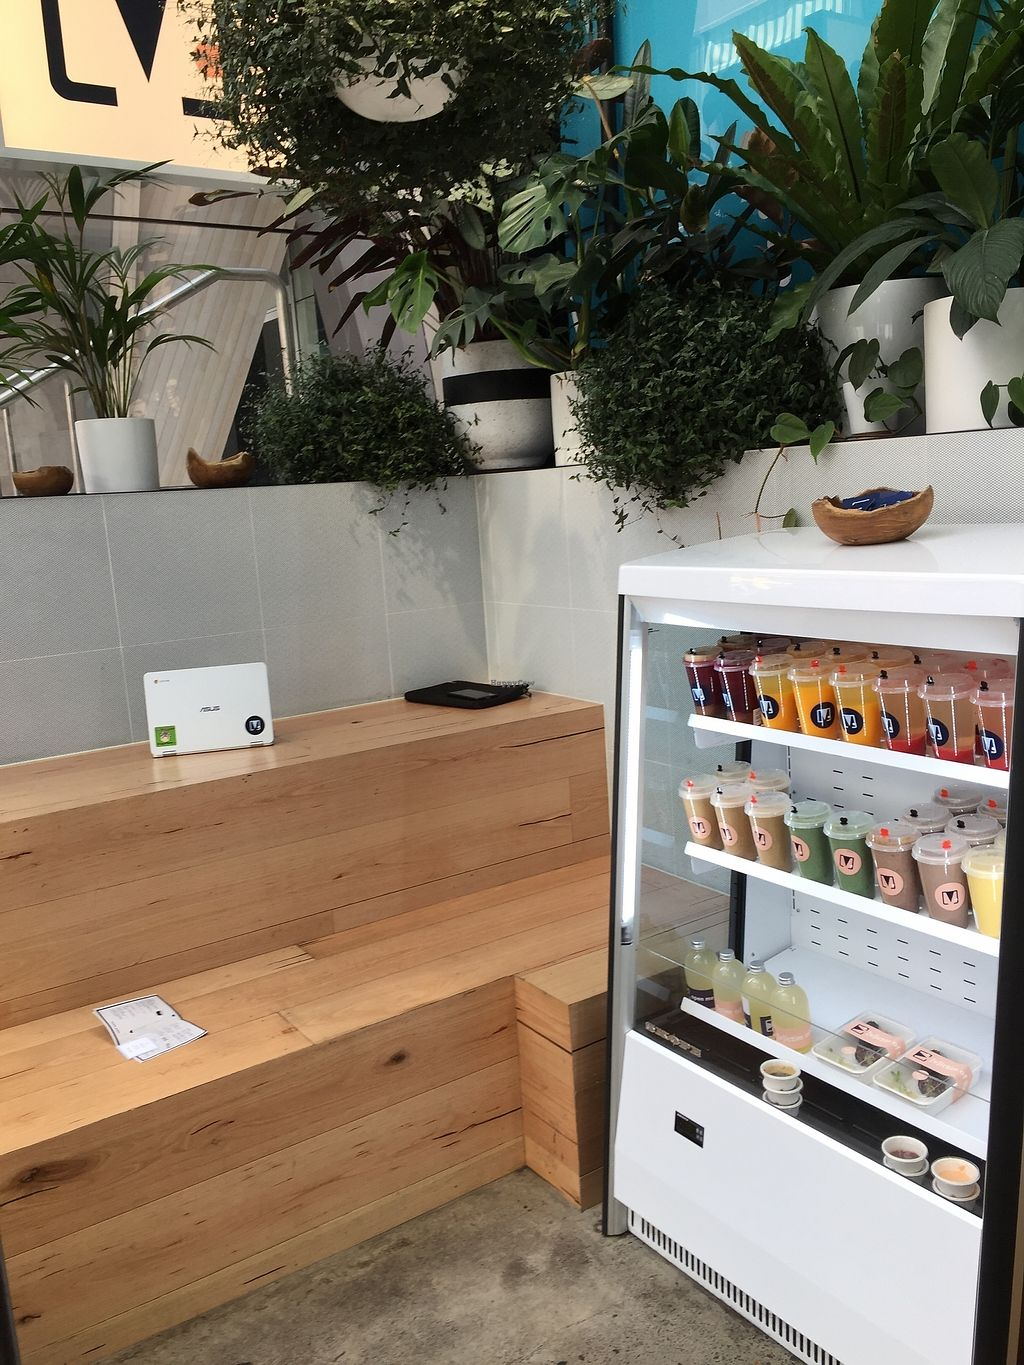 """Photo of V. Melb  by <a href=""""/members/profile/Wuji_Luiji"""">Wuji_Luiji</a> <br/>Fridge and indoor seating on steps <br/> December 18, 2017  - <a href='/contact/abuse/image/107496/337054'>Report</a>"""